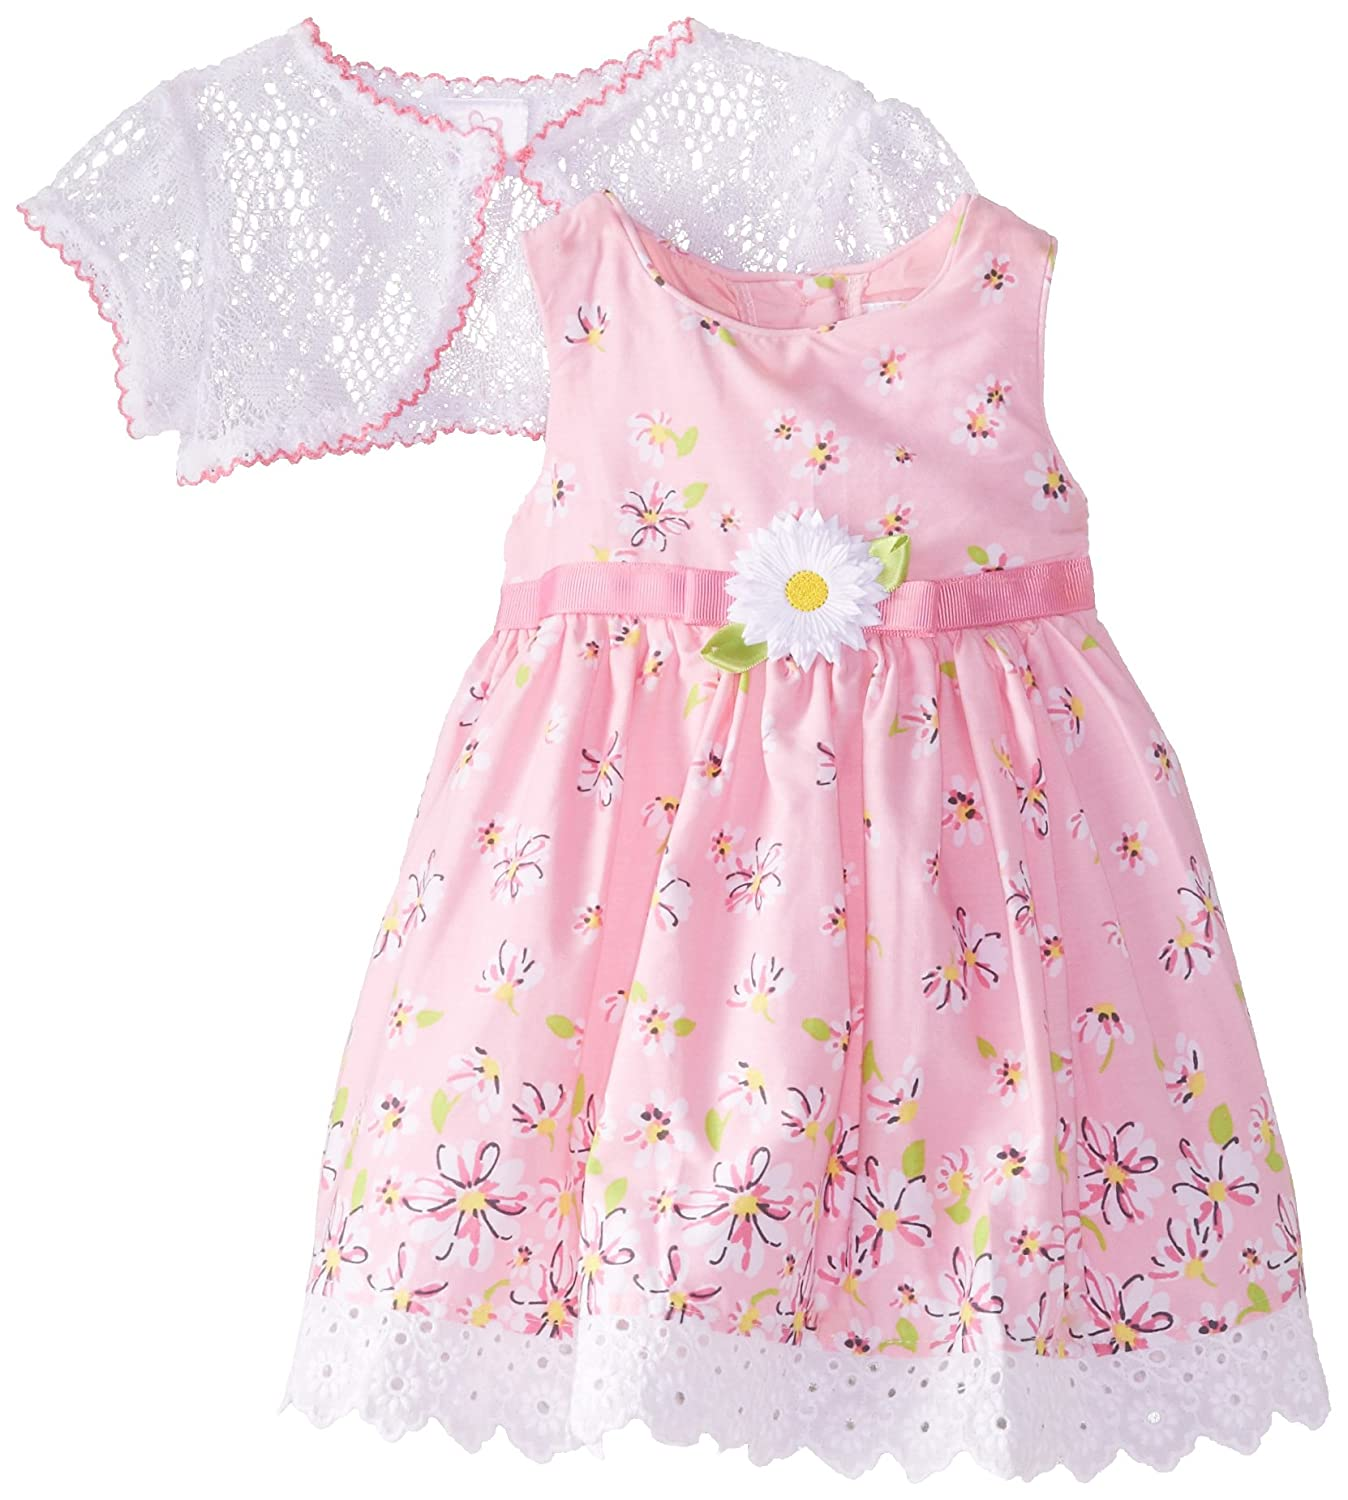 Easter Dresses For Infants Photo Album Best Fashion